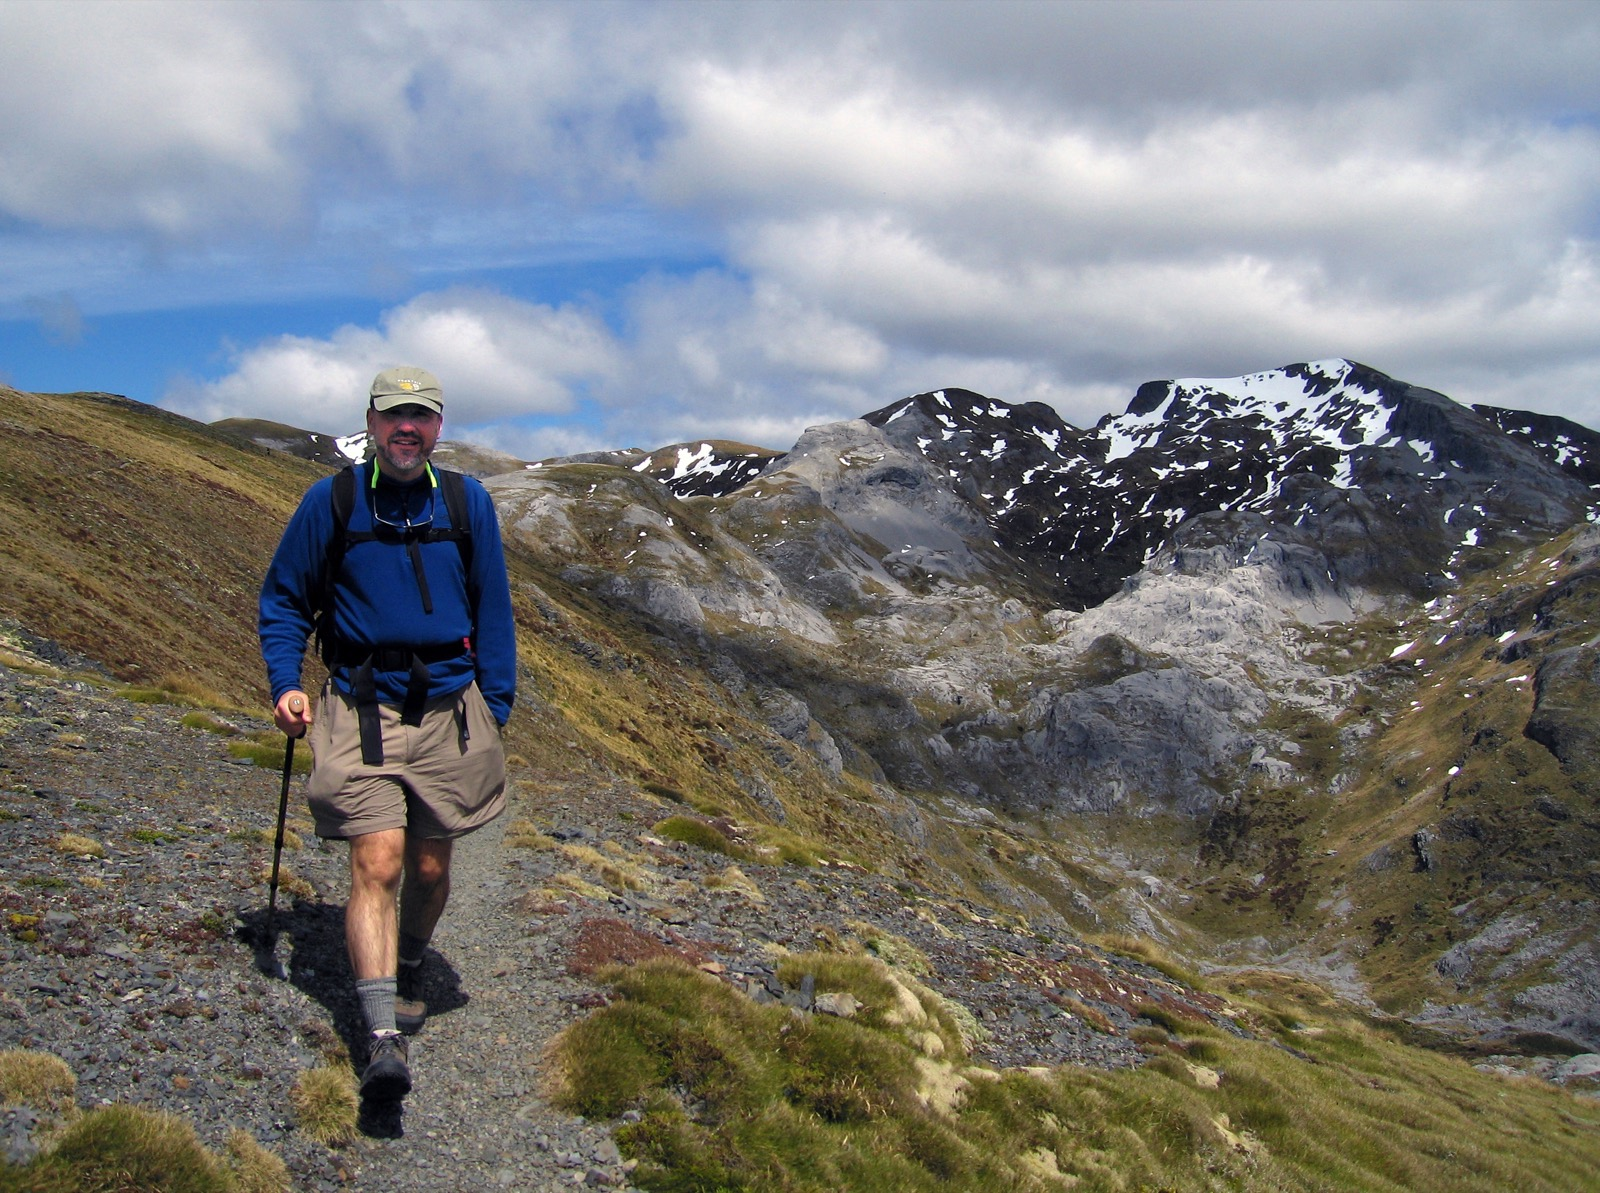 A participant treks along a path to Mt. Arthur to take in the amazing view of the mountains behind him.